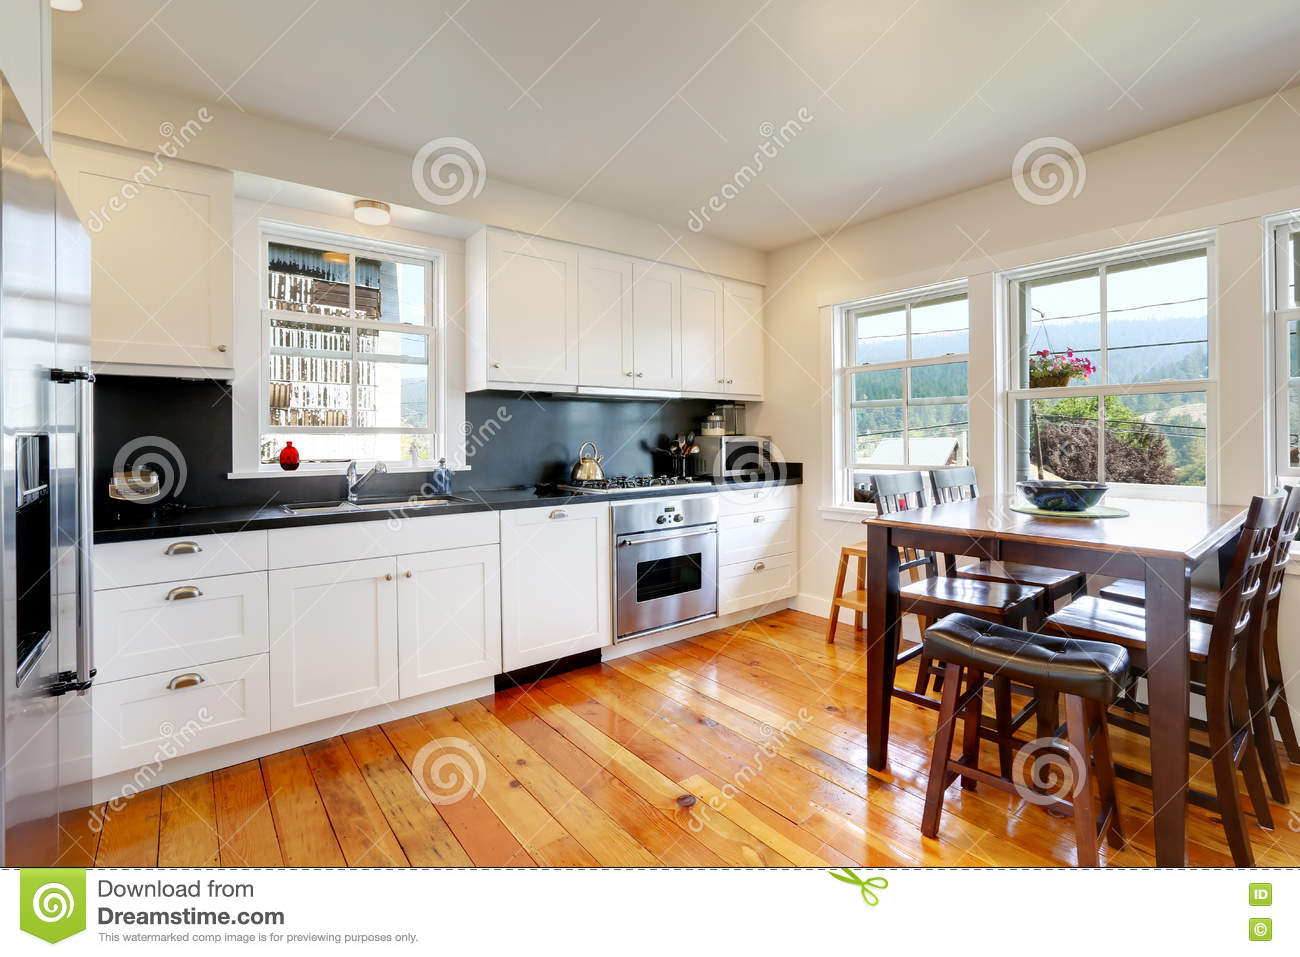 Design Of Kitchen Room Interior With White Cabinets And Black Counter Tops Tall Wooden Dining Table Chairs Northwest USA